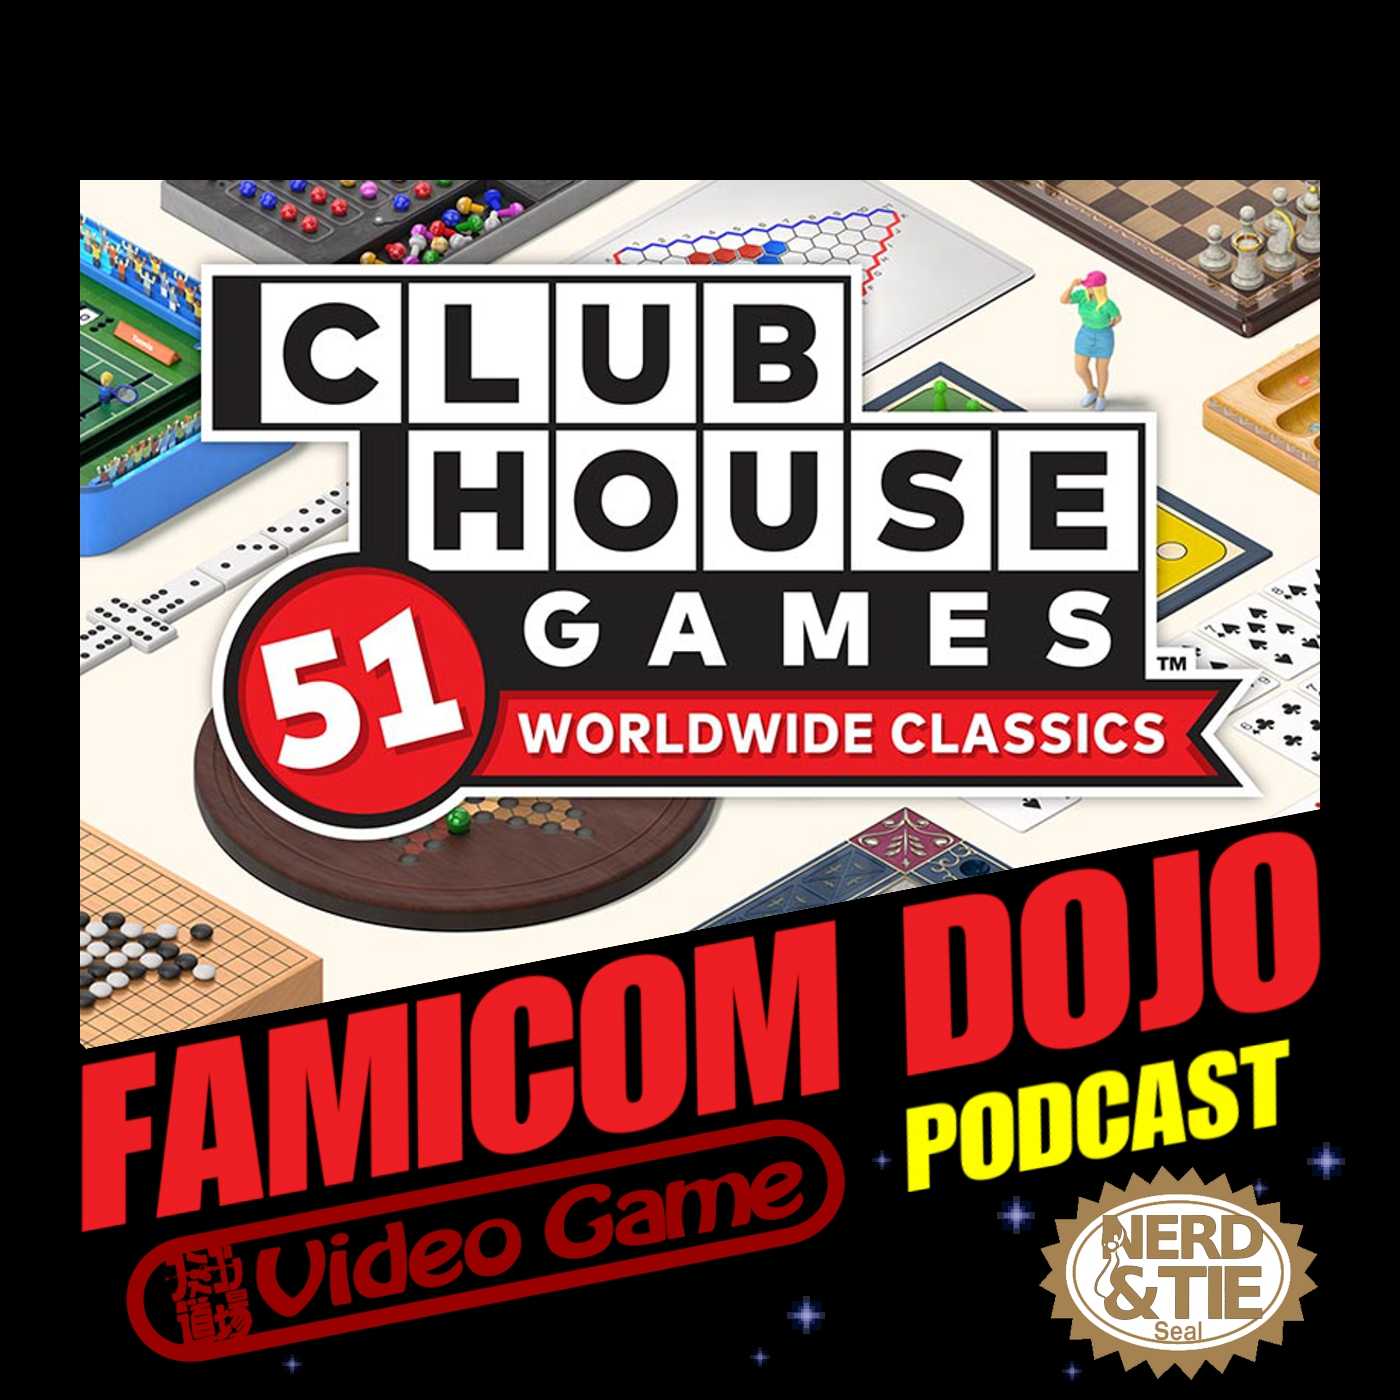 Famicom Dojo Podcast 162: Quarantine Games